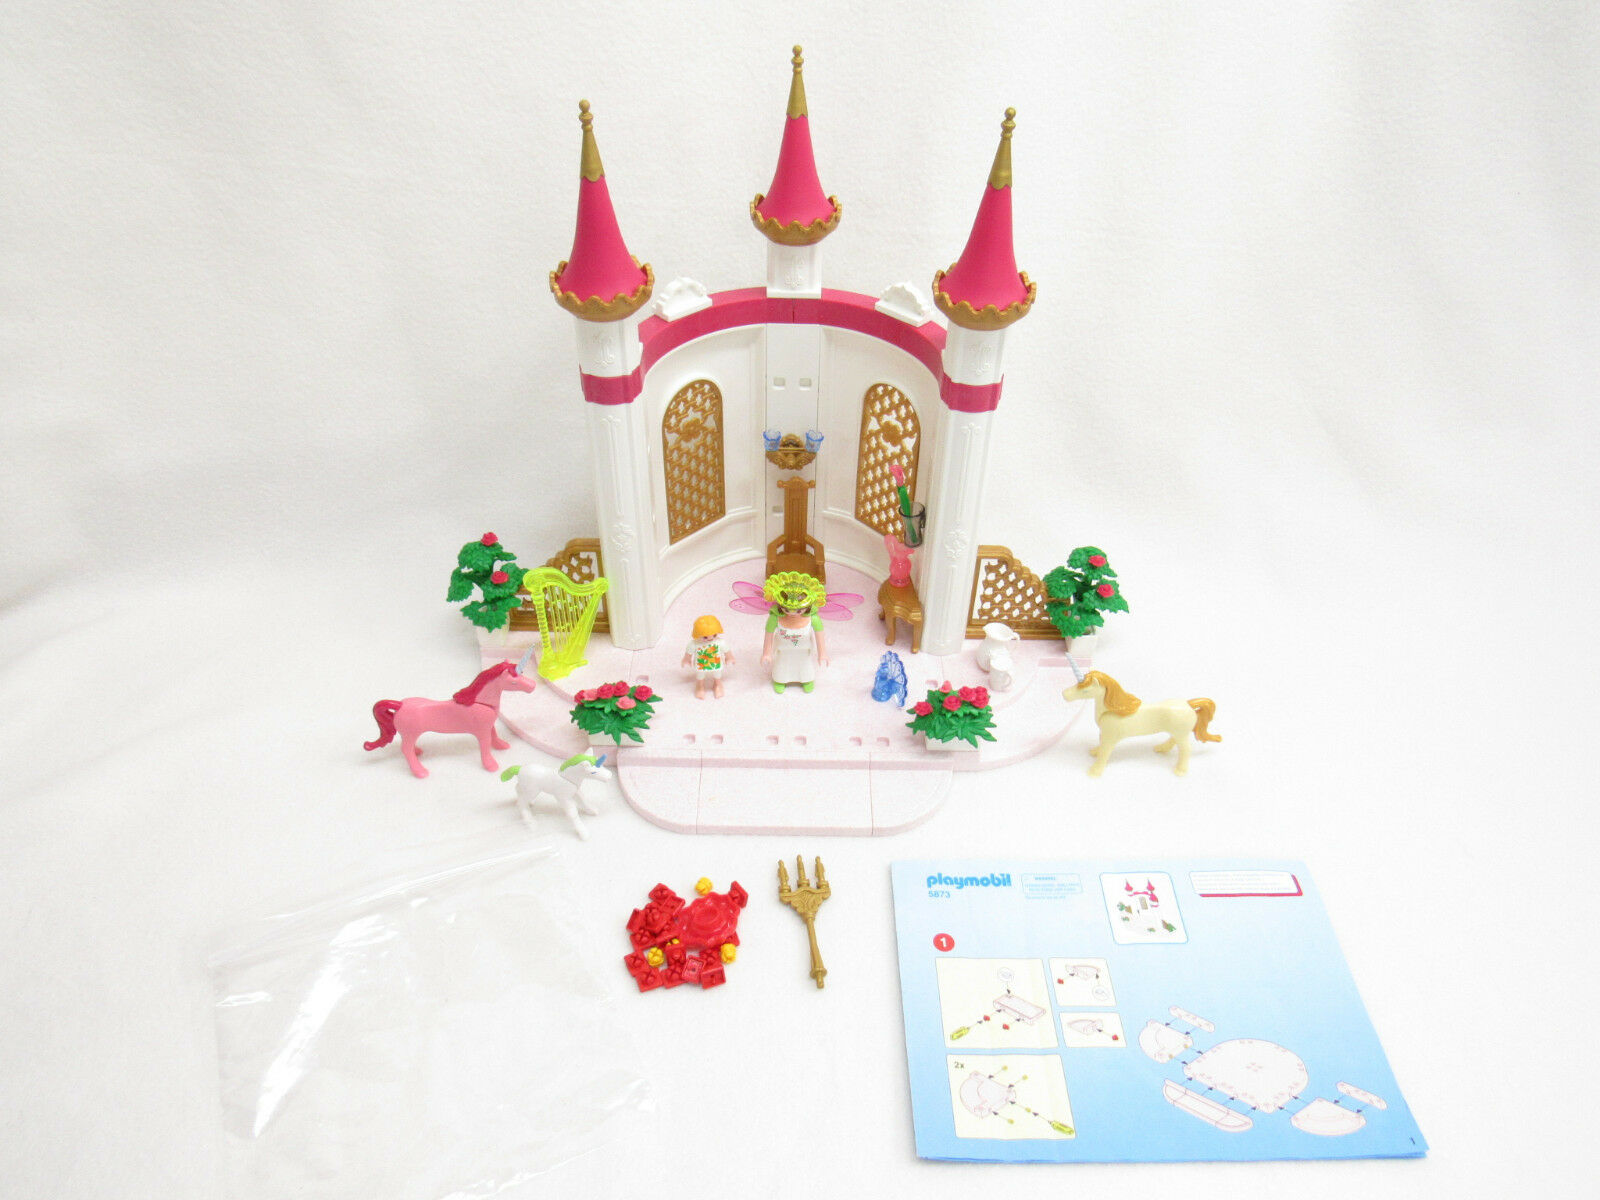 GOEBRA PLAYMOBIL PRINCESS CASTLE SET--NOT SET--NOT SET--NOT COMPLETE 337974